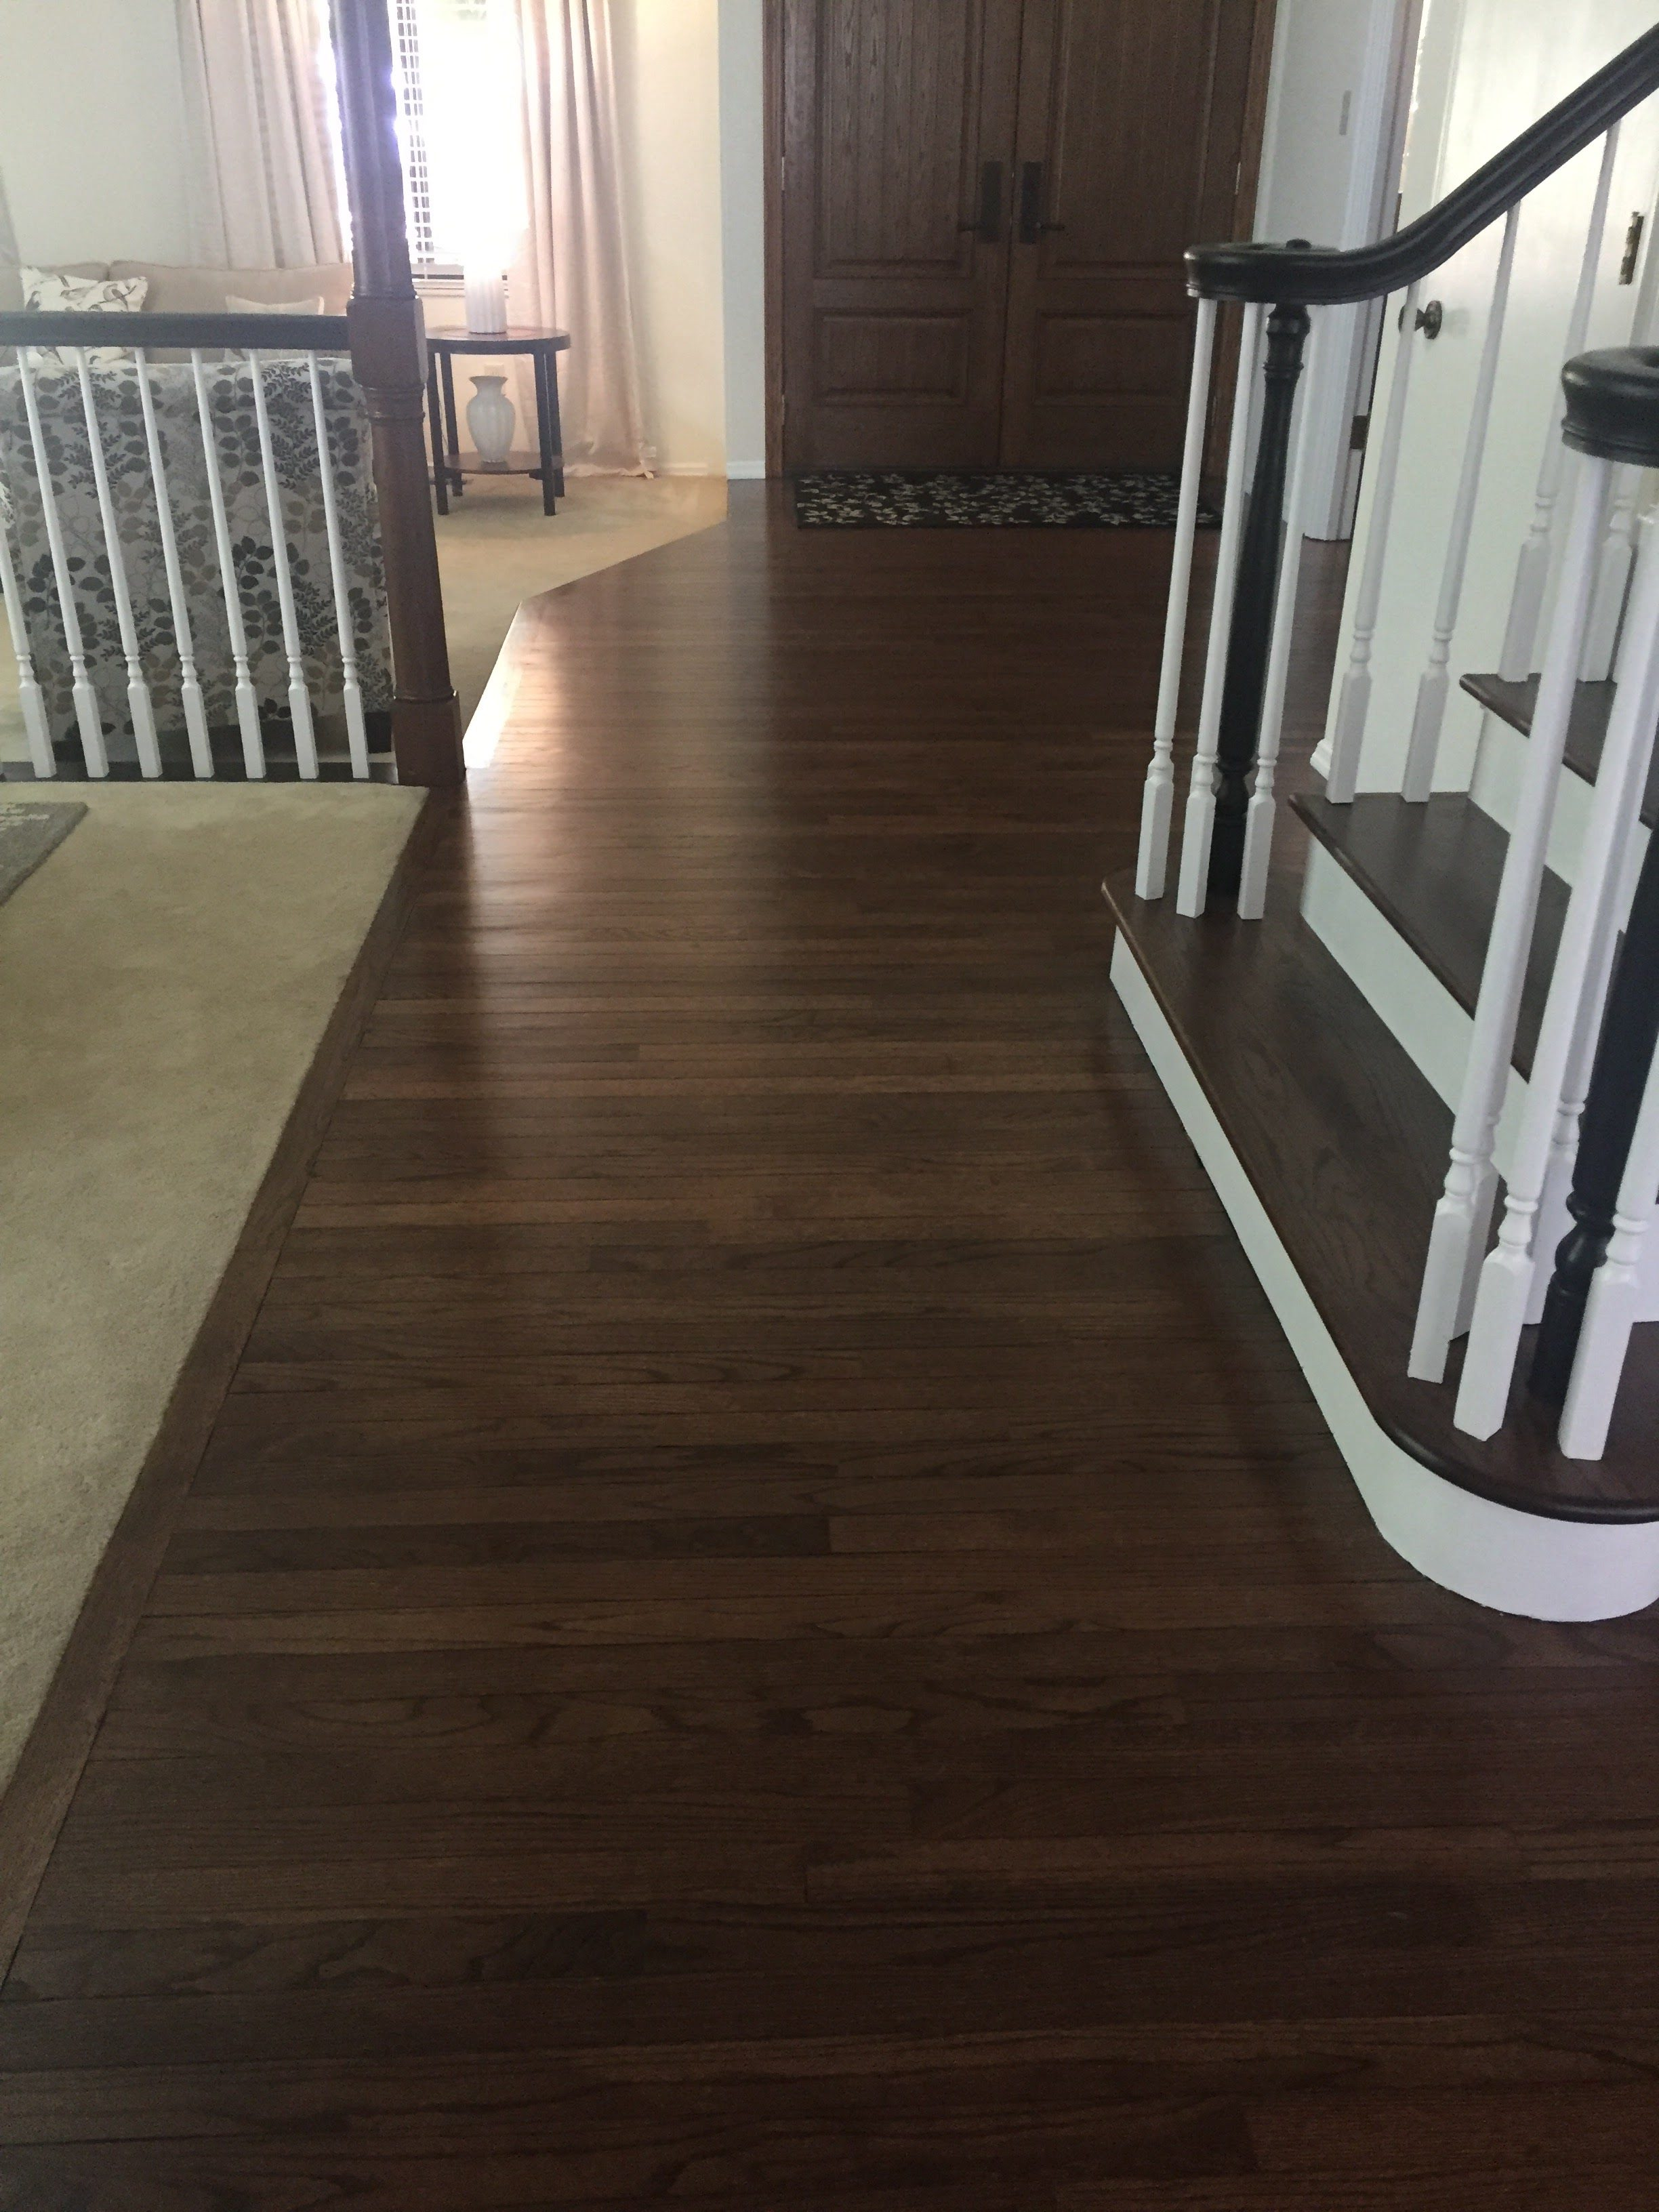 Refinished hardwood floors in West County